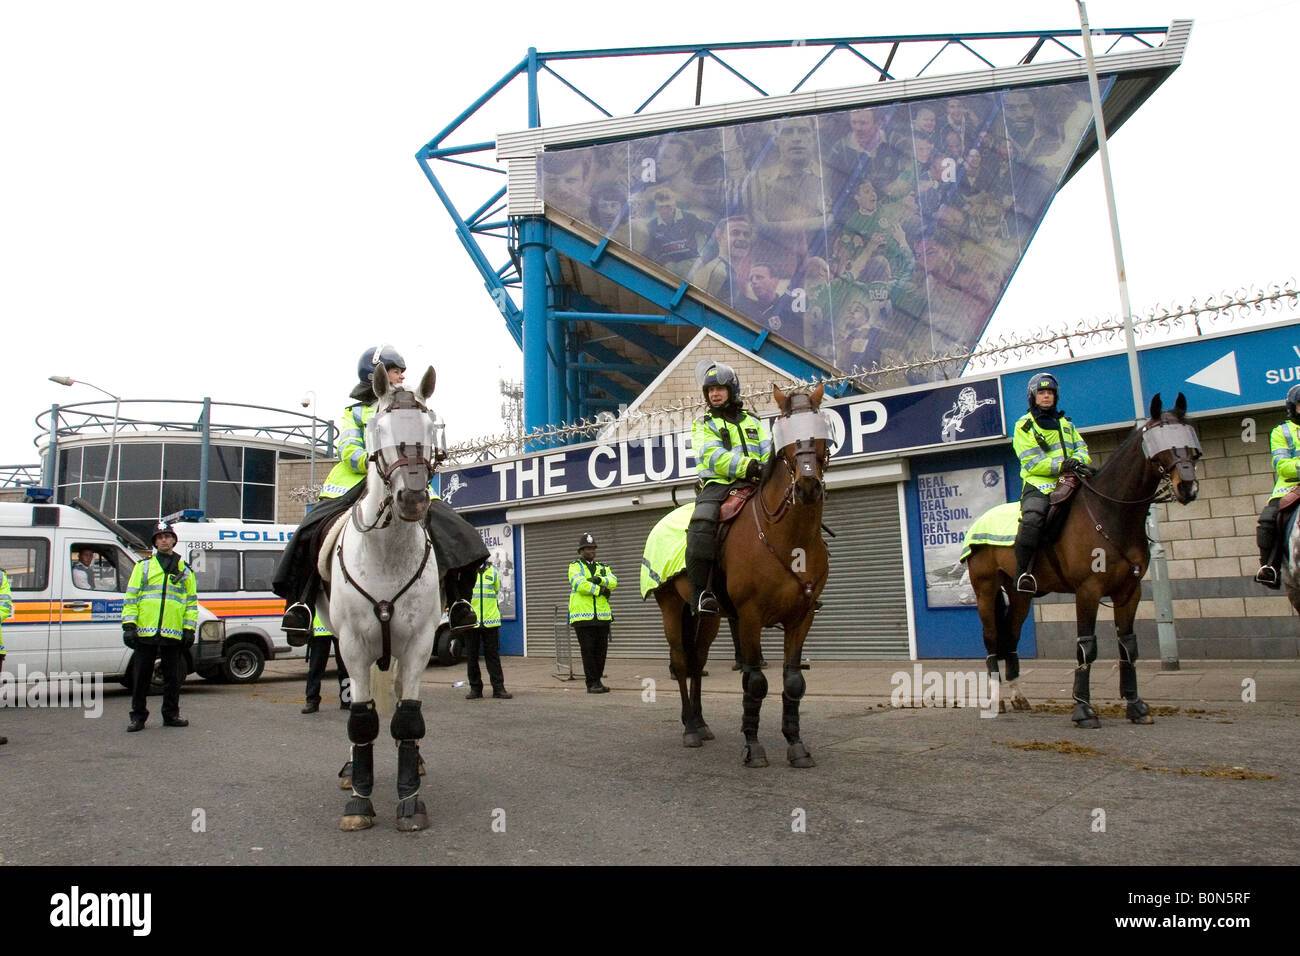 Riot police outside the Millwall football stadium The New Den before the Millwall vs Leeds playoff match. - Stock Image